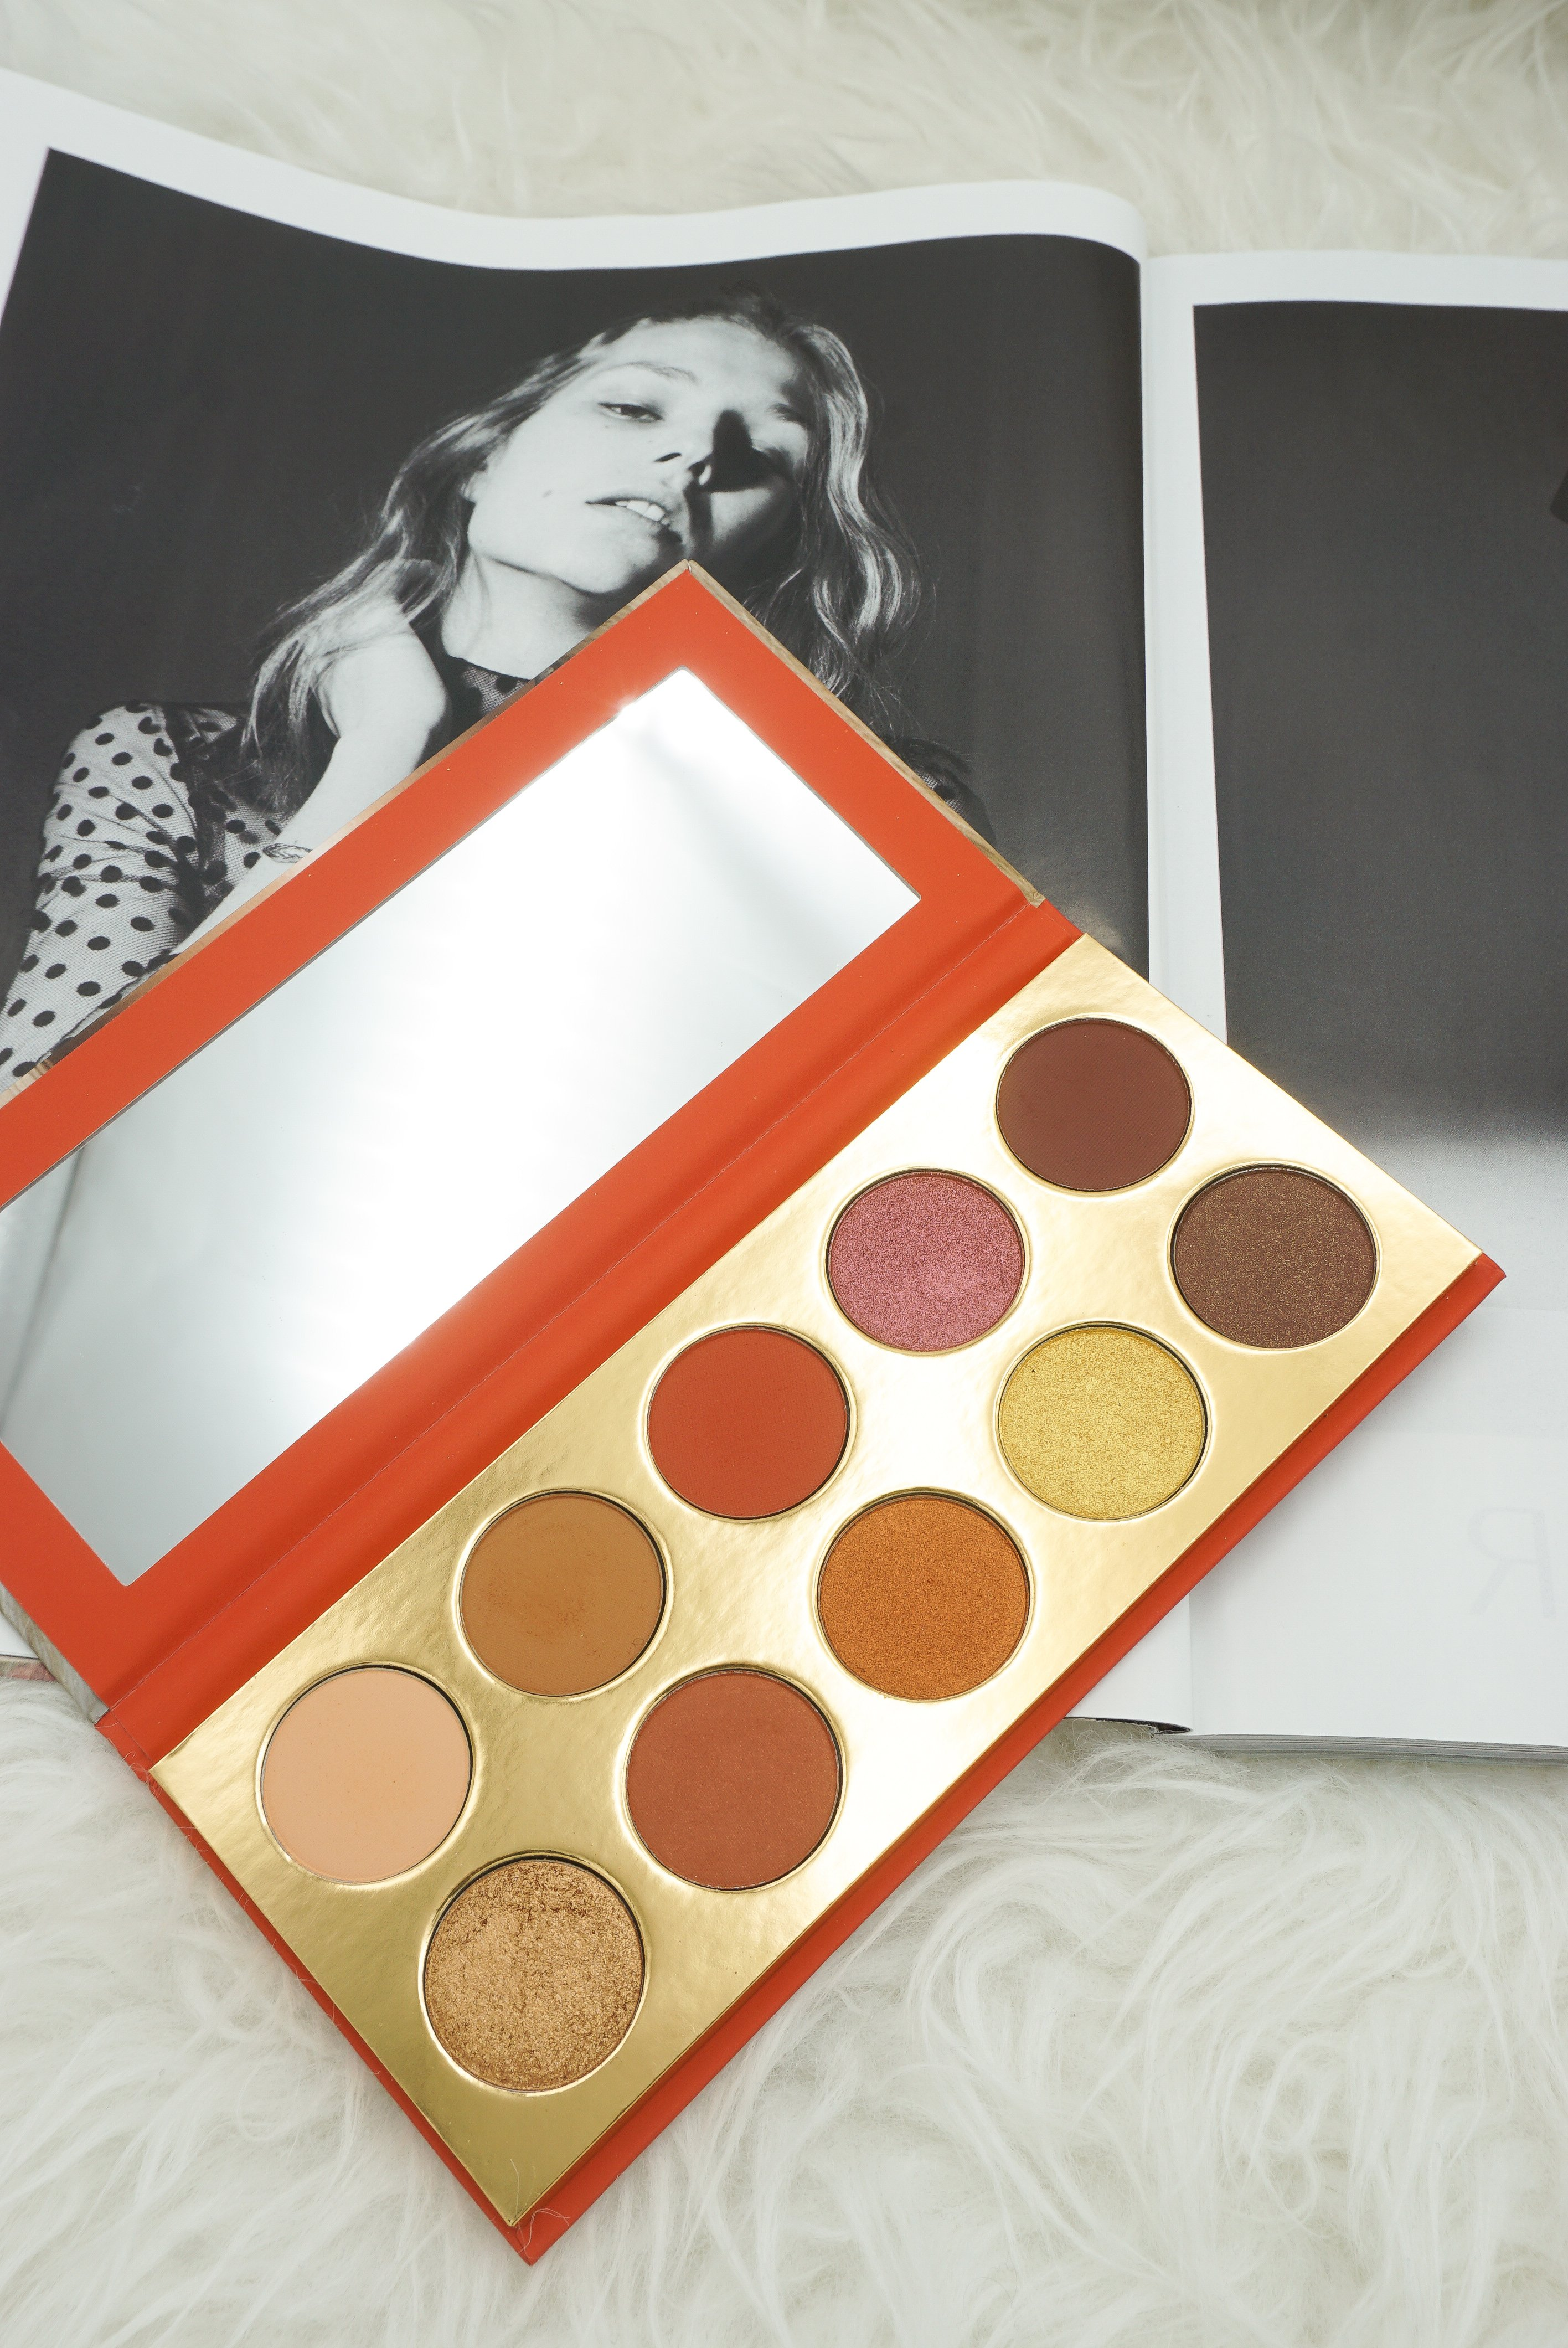 KKW Beauty Sooo Fire Eyeshadow Palette | Review & Swatches